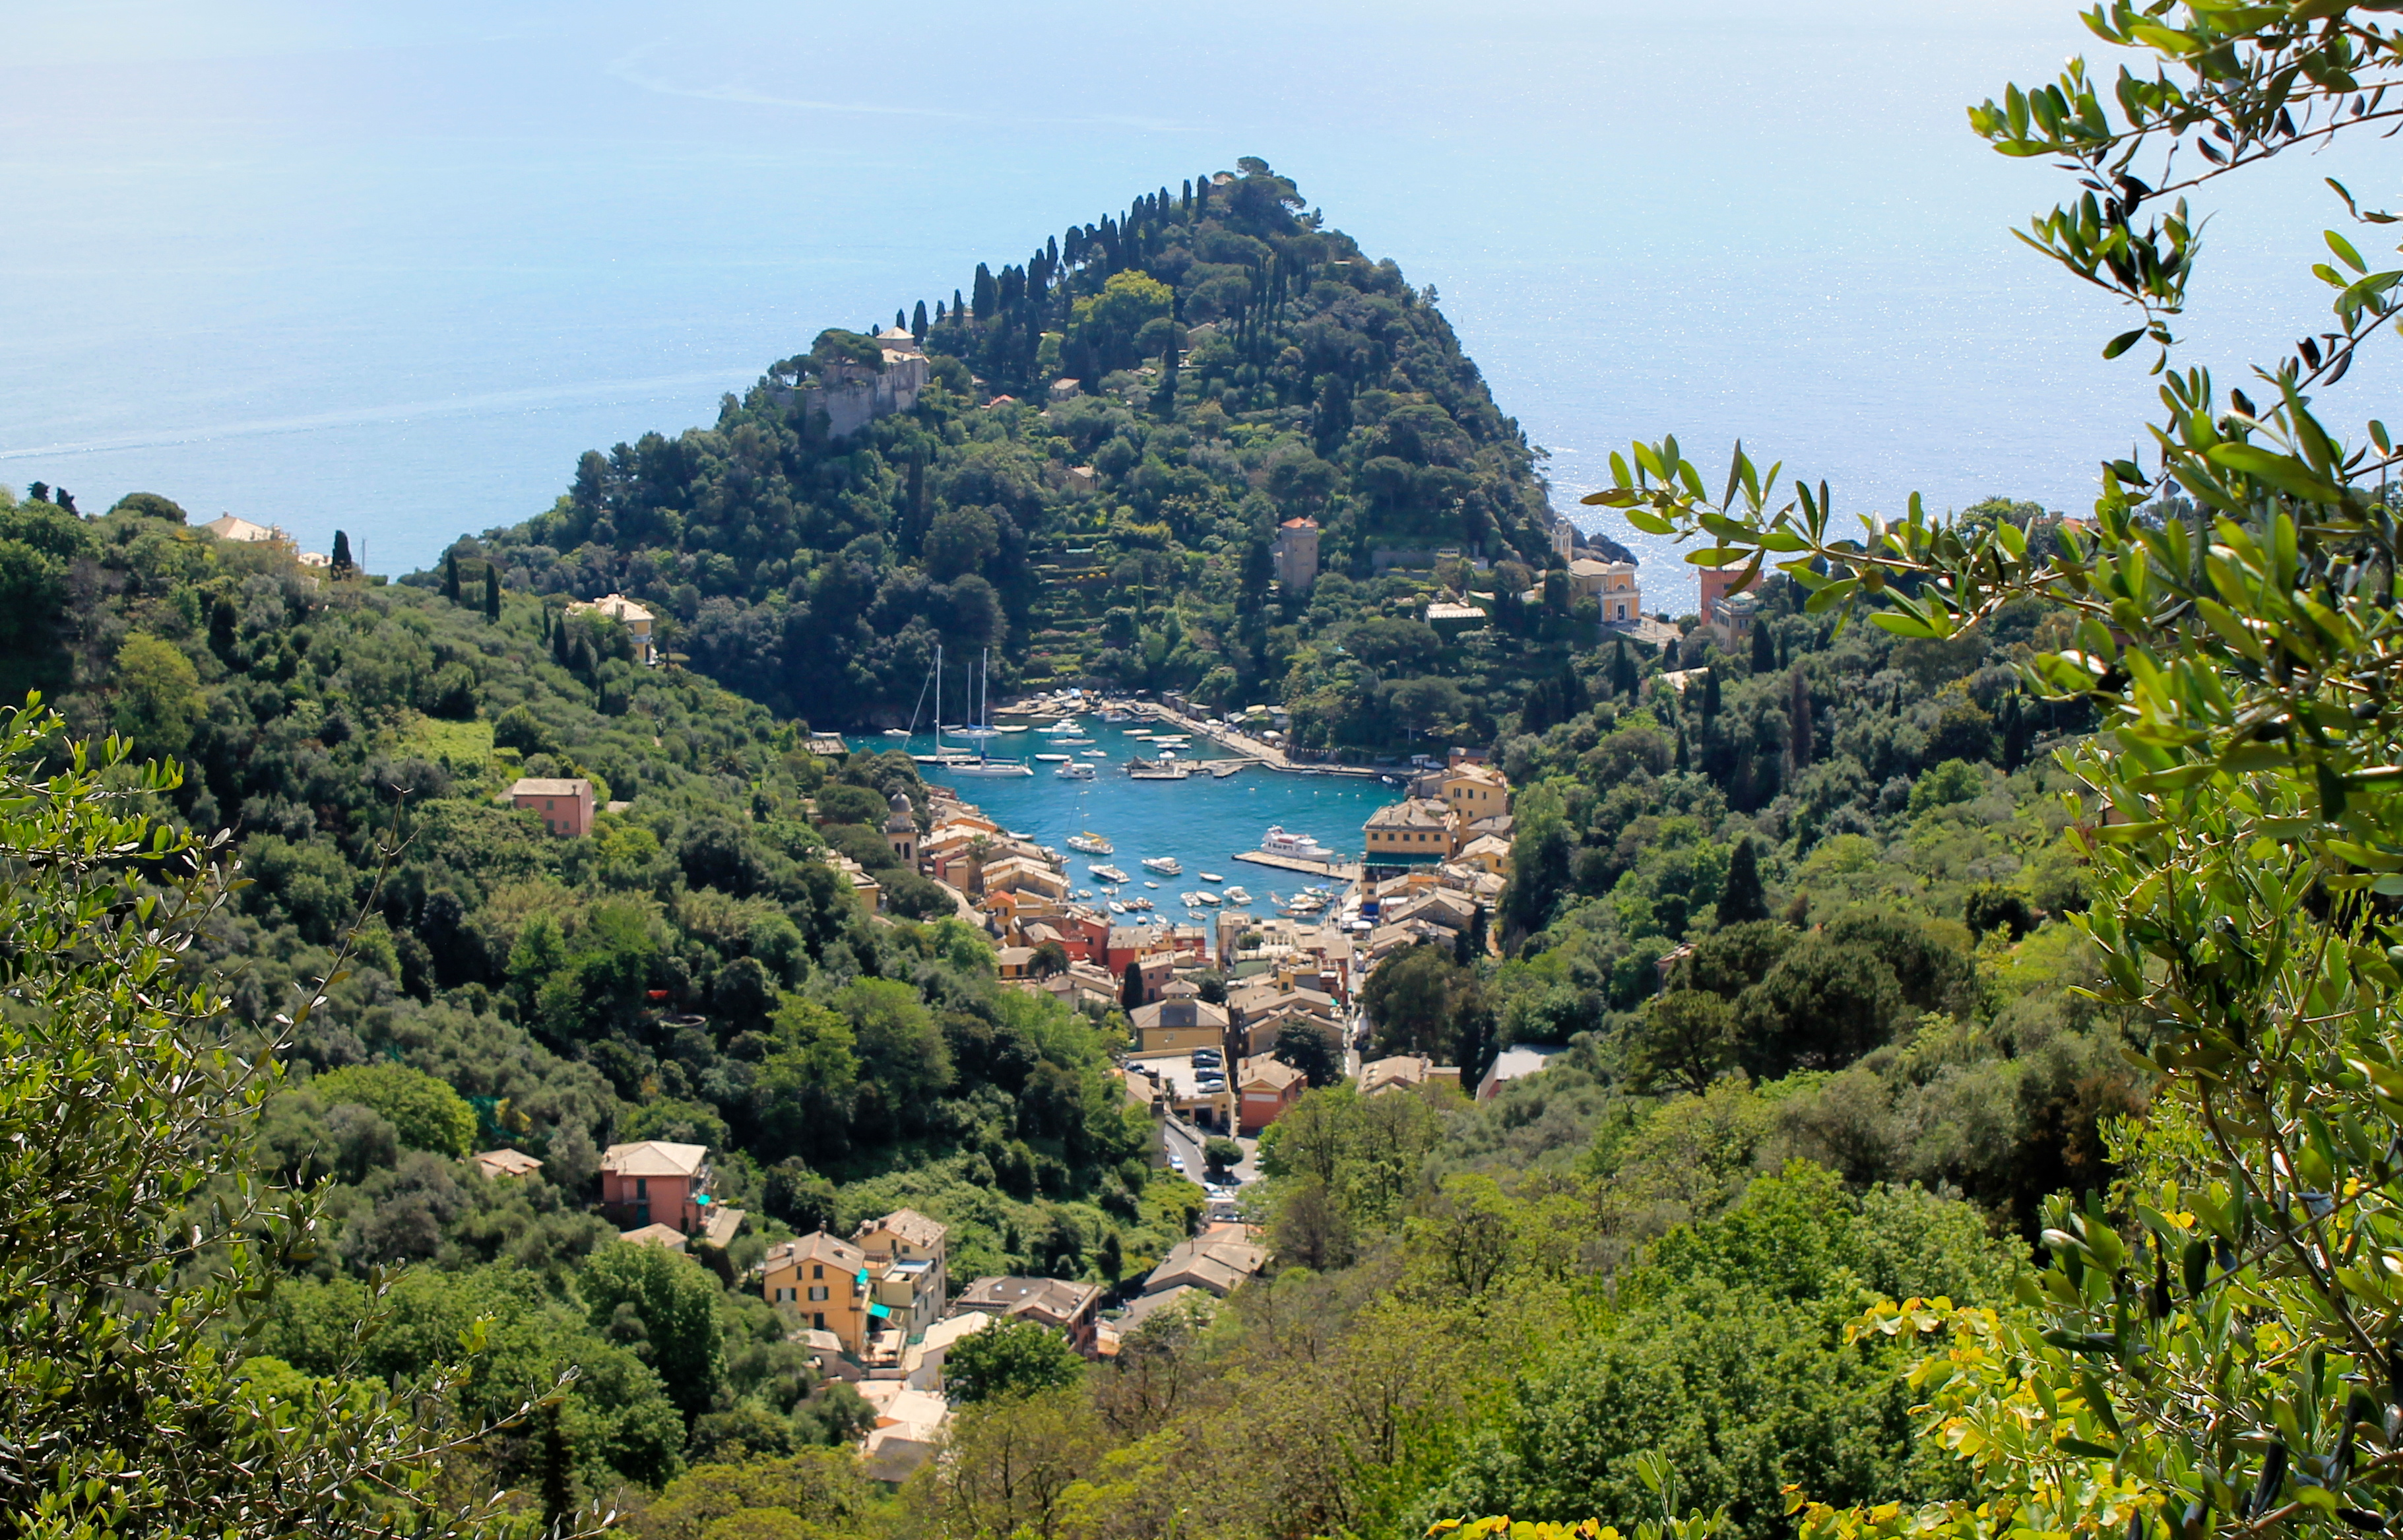 After about a 15 minute steep ascent look back where you came from – you'll be greeted with this amazing view of Portofino! Photo by Gina Mussio